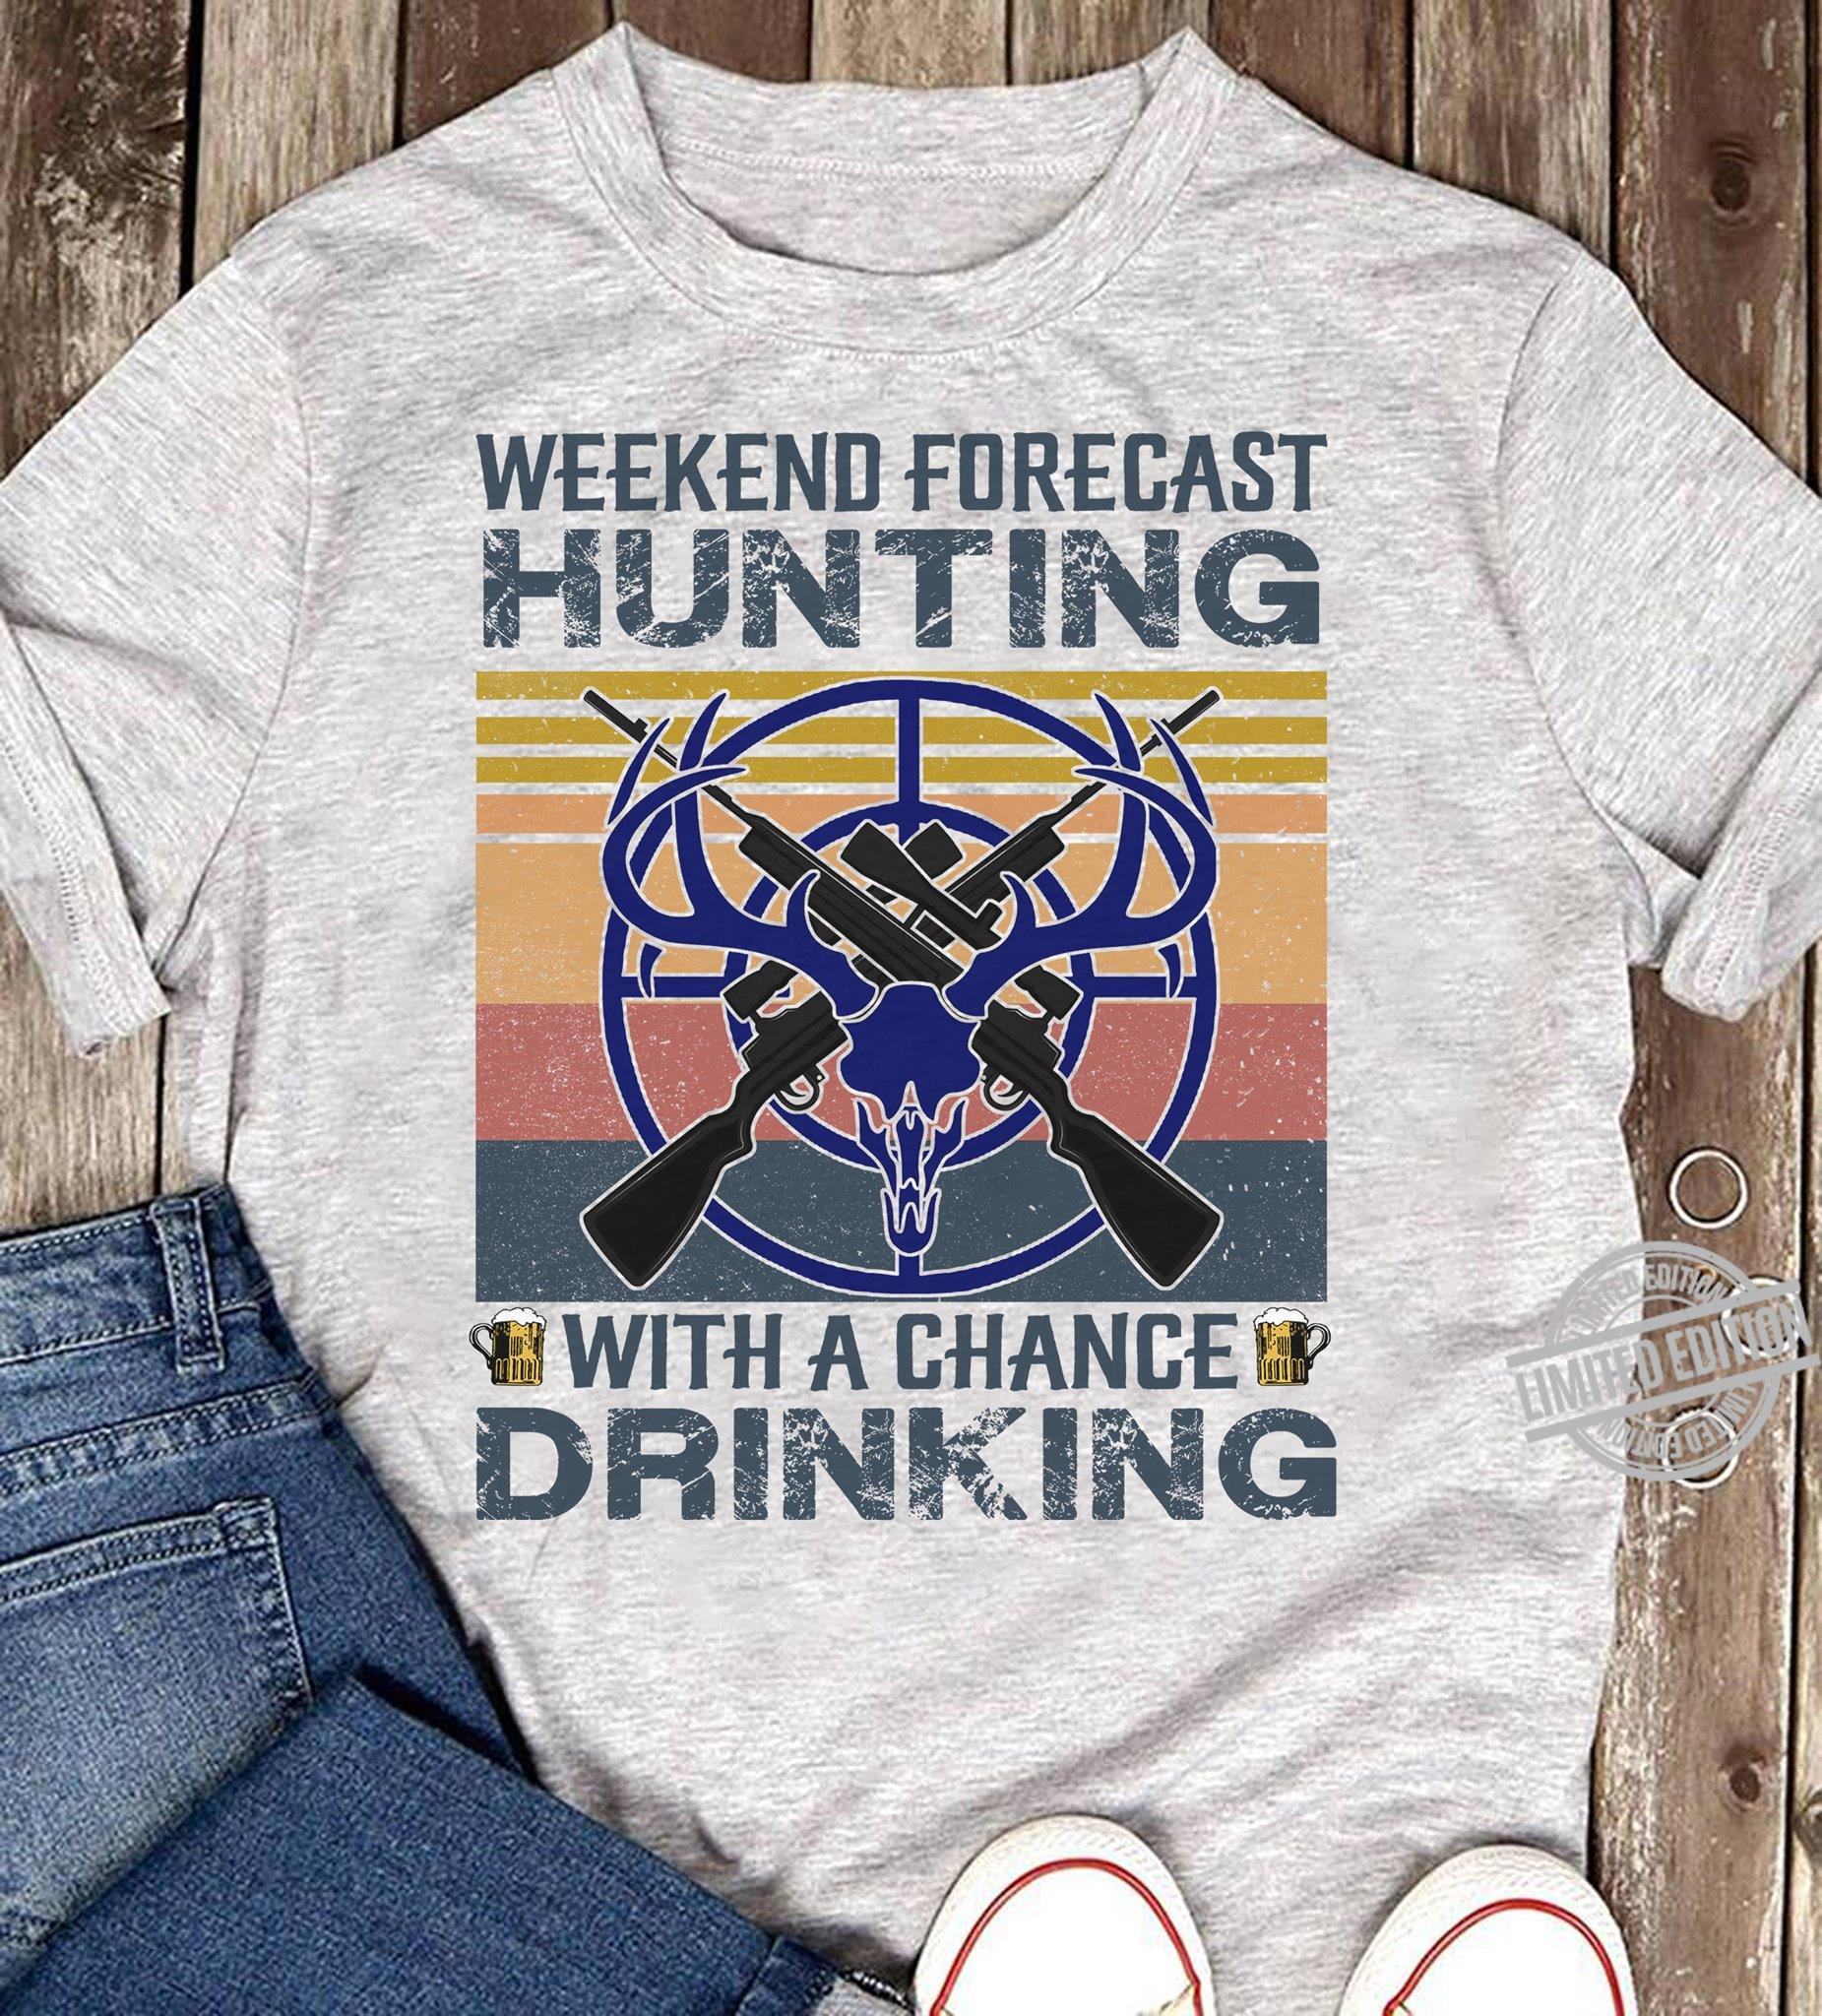 Weekend Forecast Hunting With A Chance Drinking Shirt